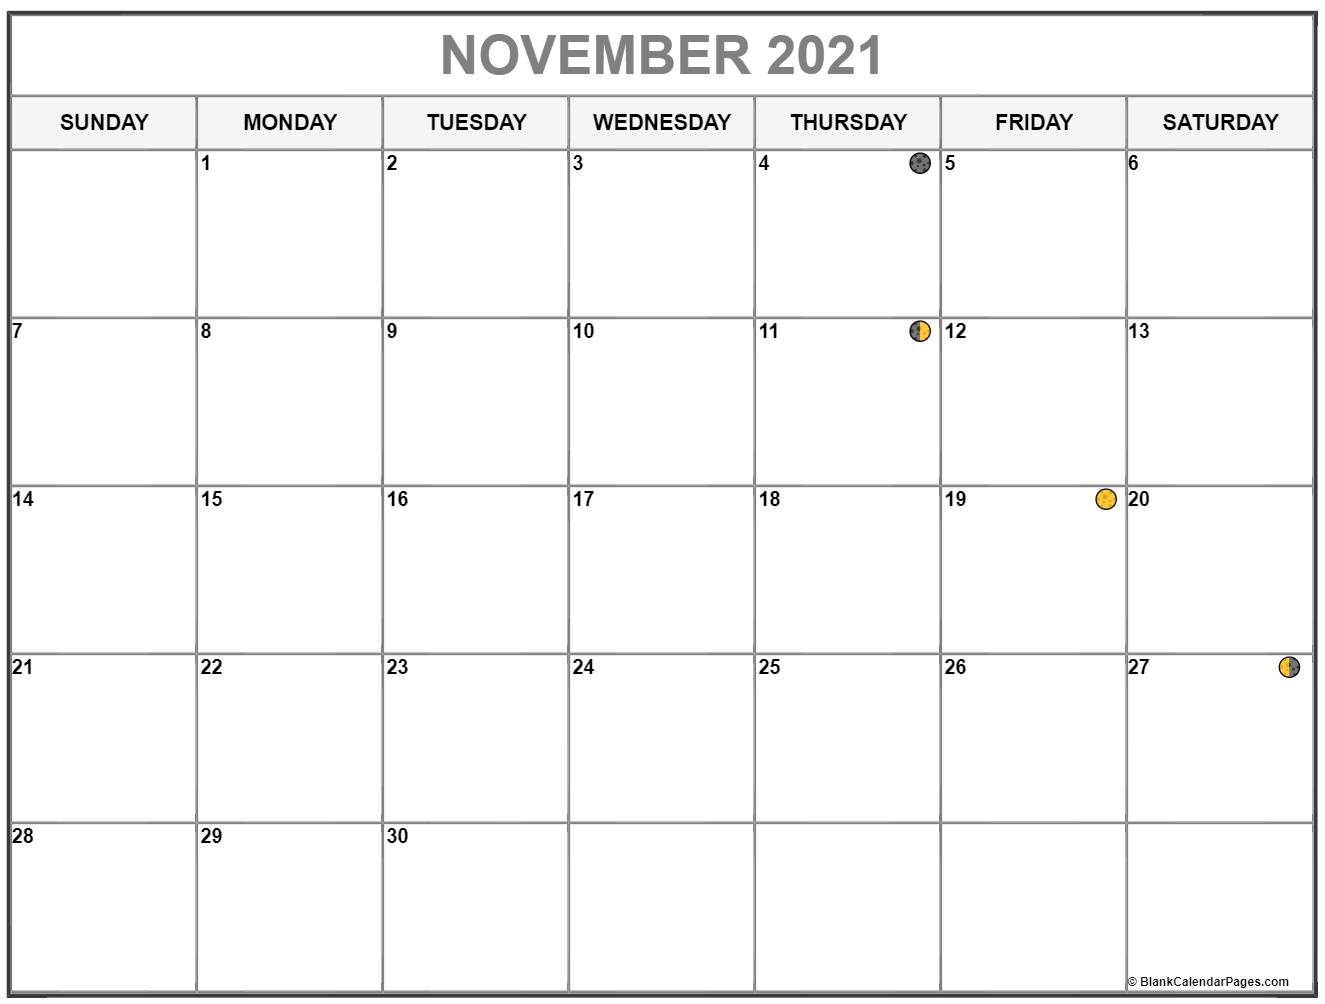 November 2021 lunar calendar. Moon phases with USA holidays